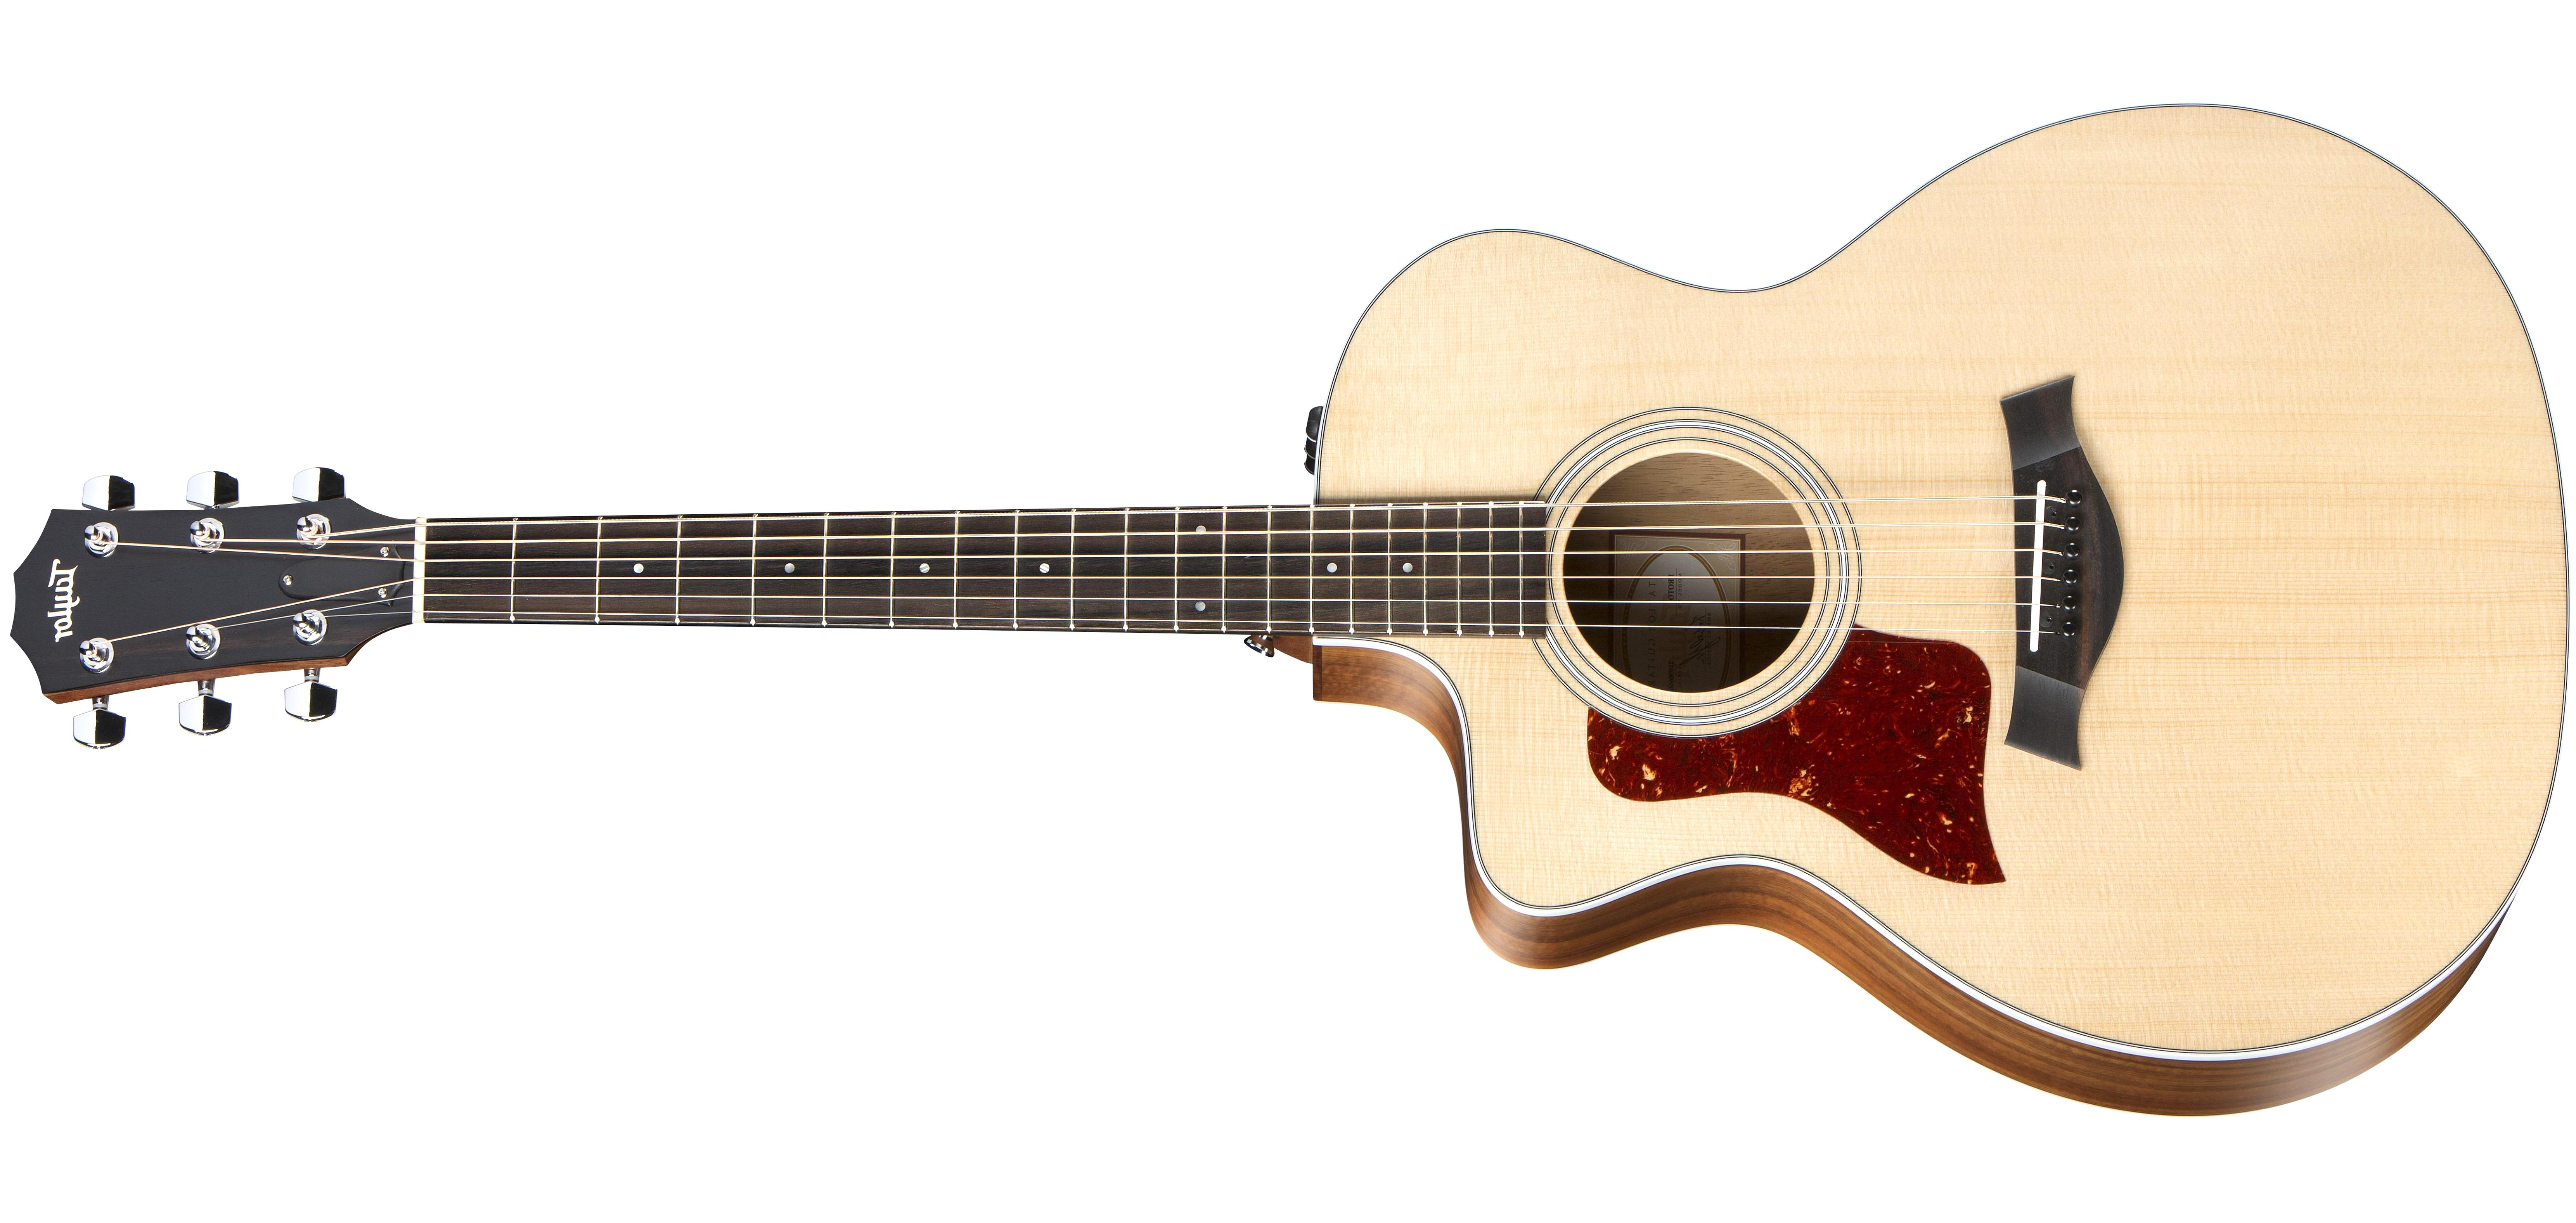 guitare taylor d'occasion